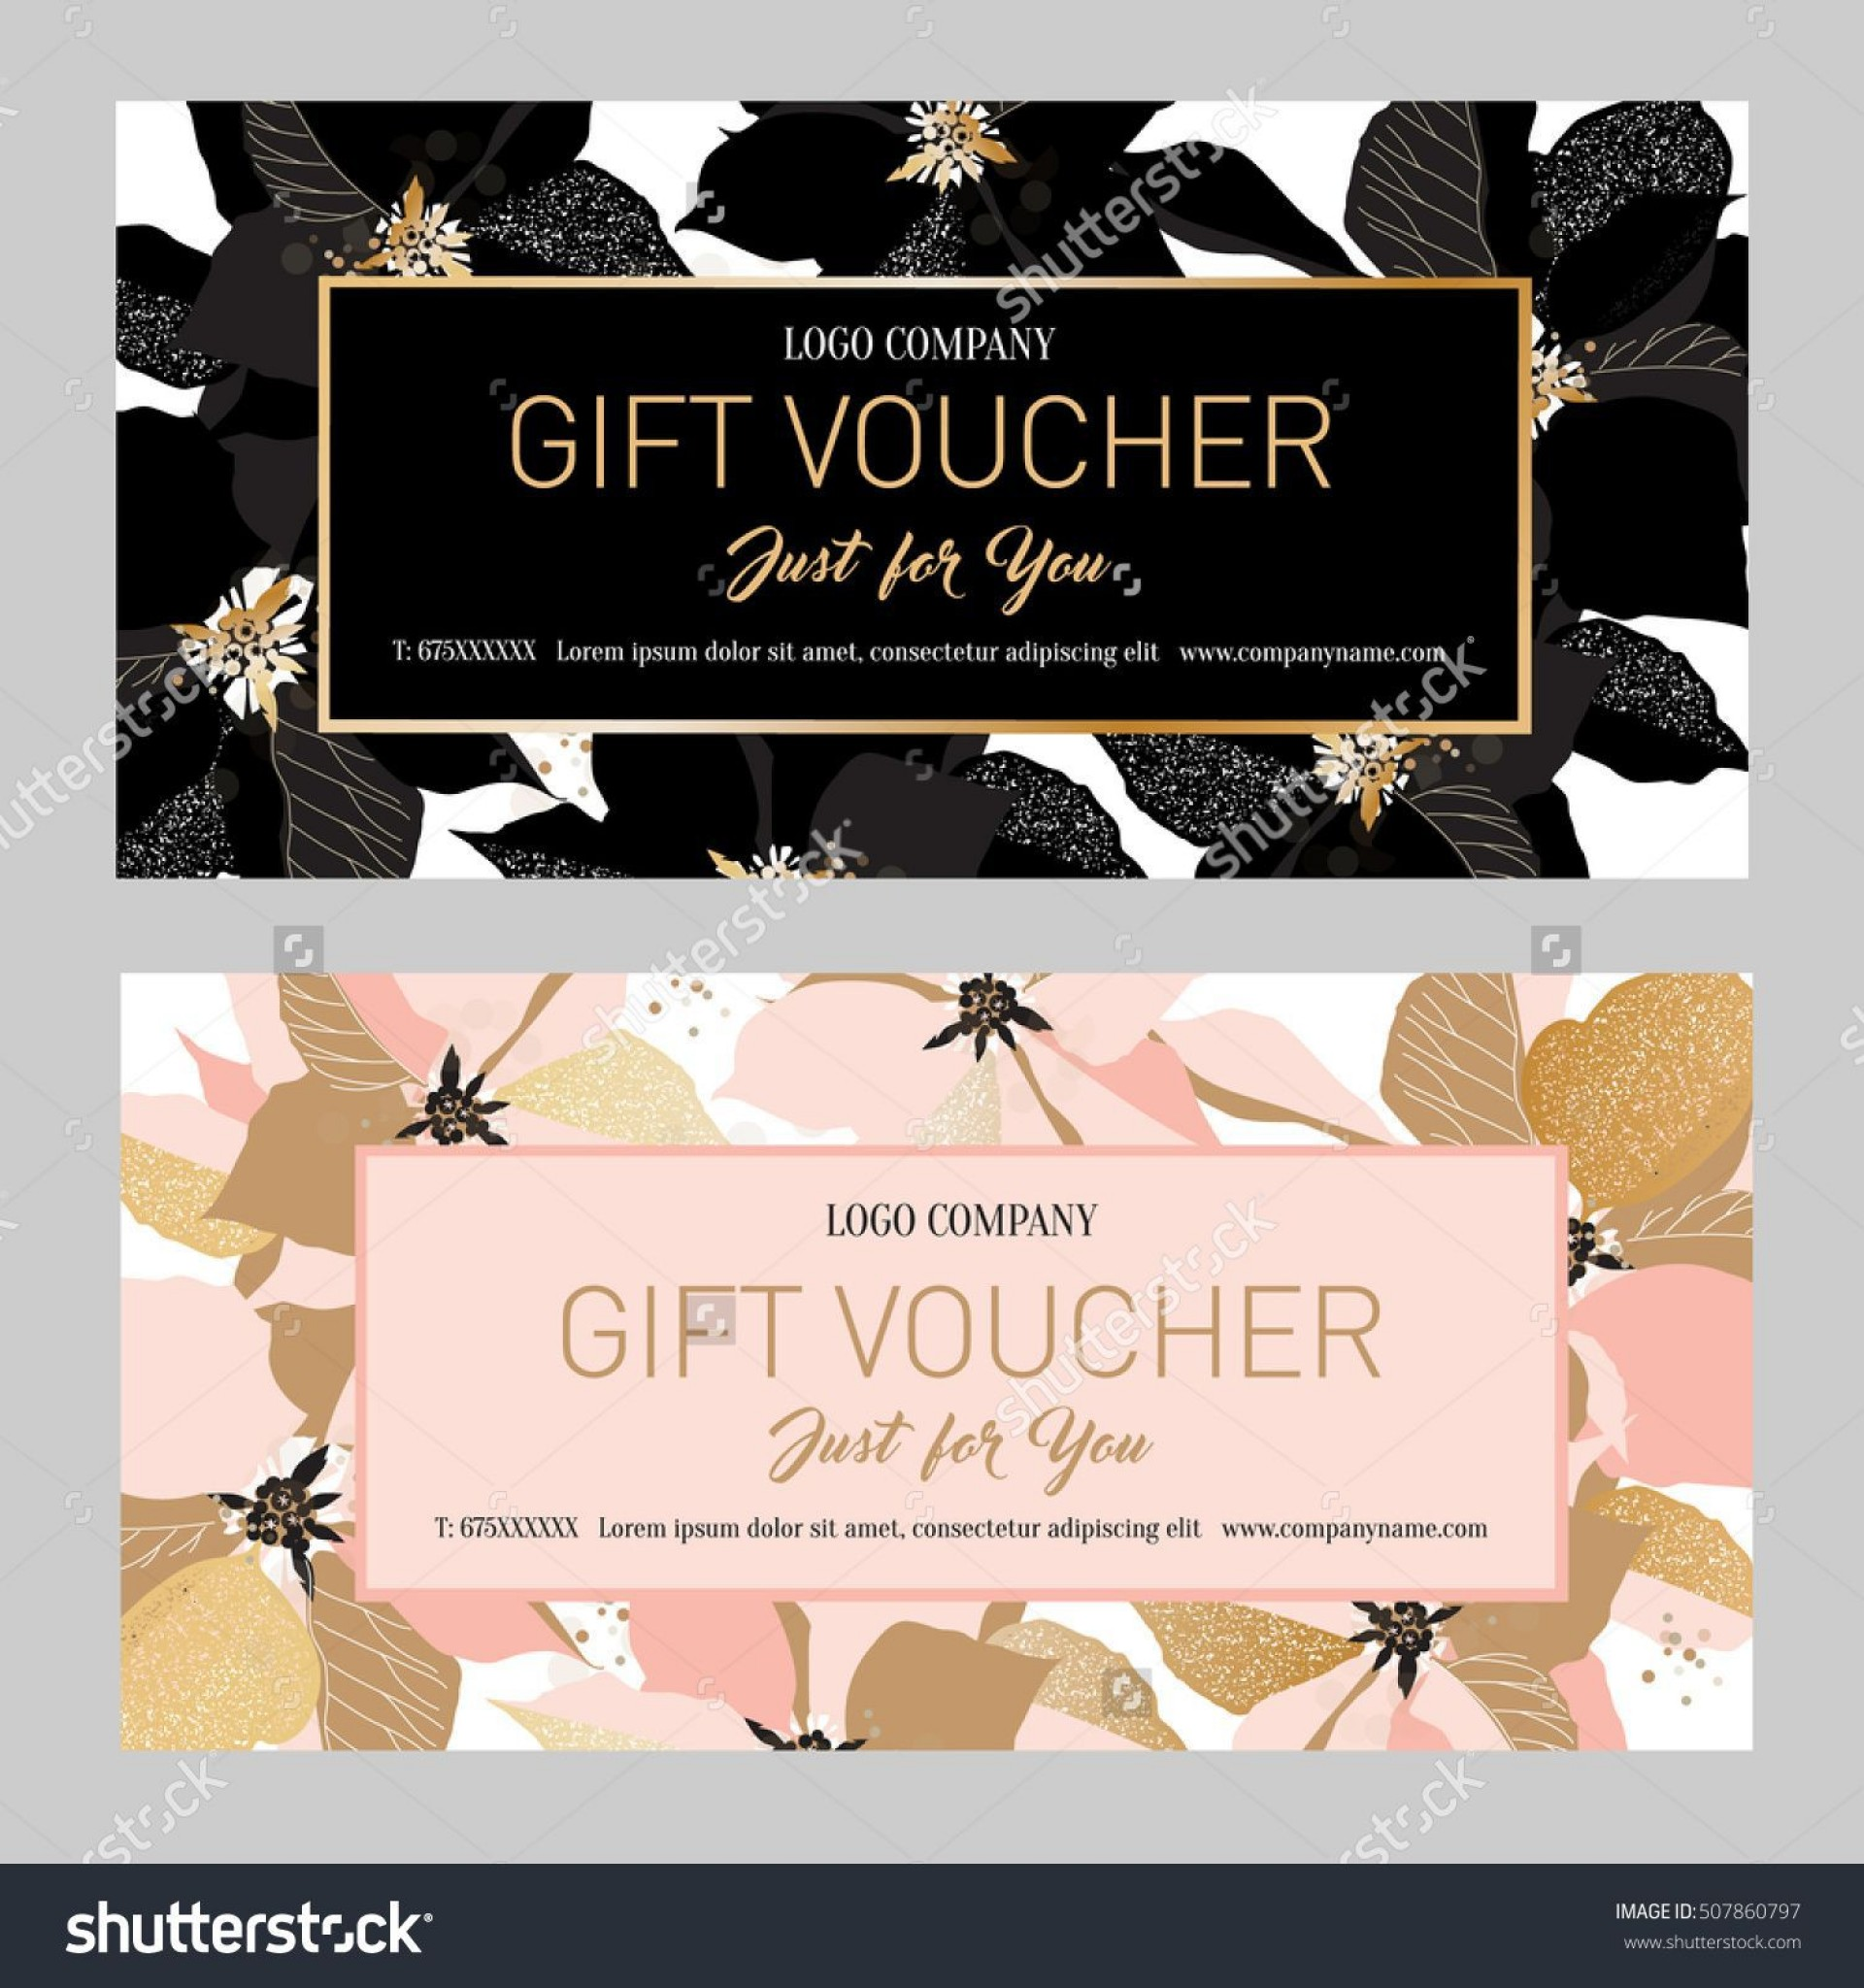 000 Fearsome Salon Gift Certificate Template Sample 1920